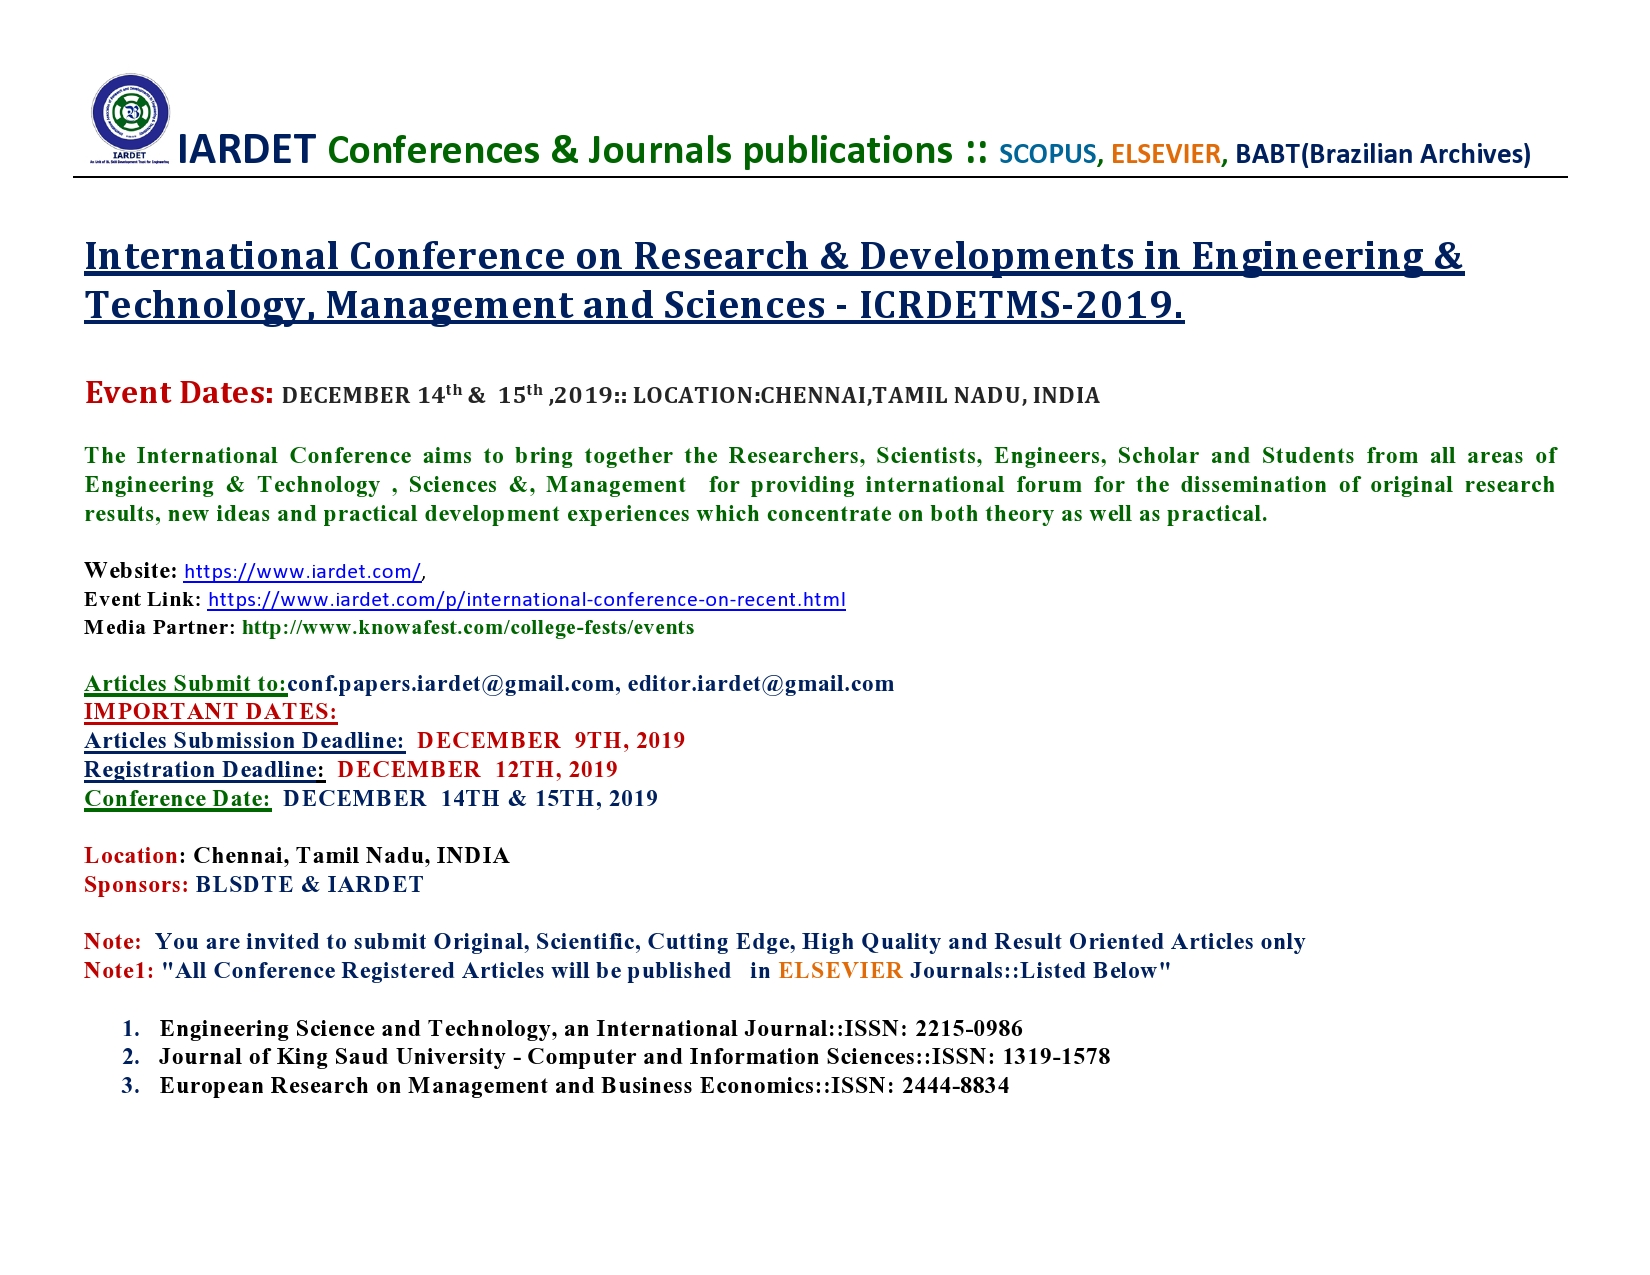 International Conference on Research and Developments in Engineering and Technology, Management and Sciences ICRDETMS 2019